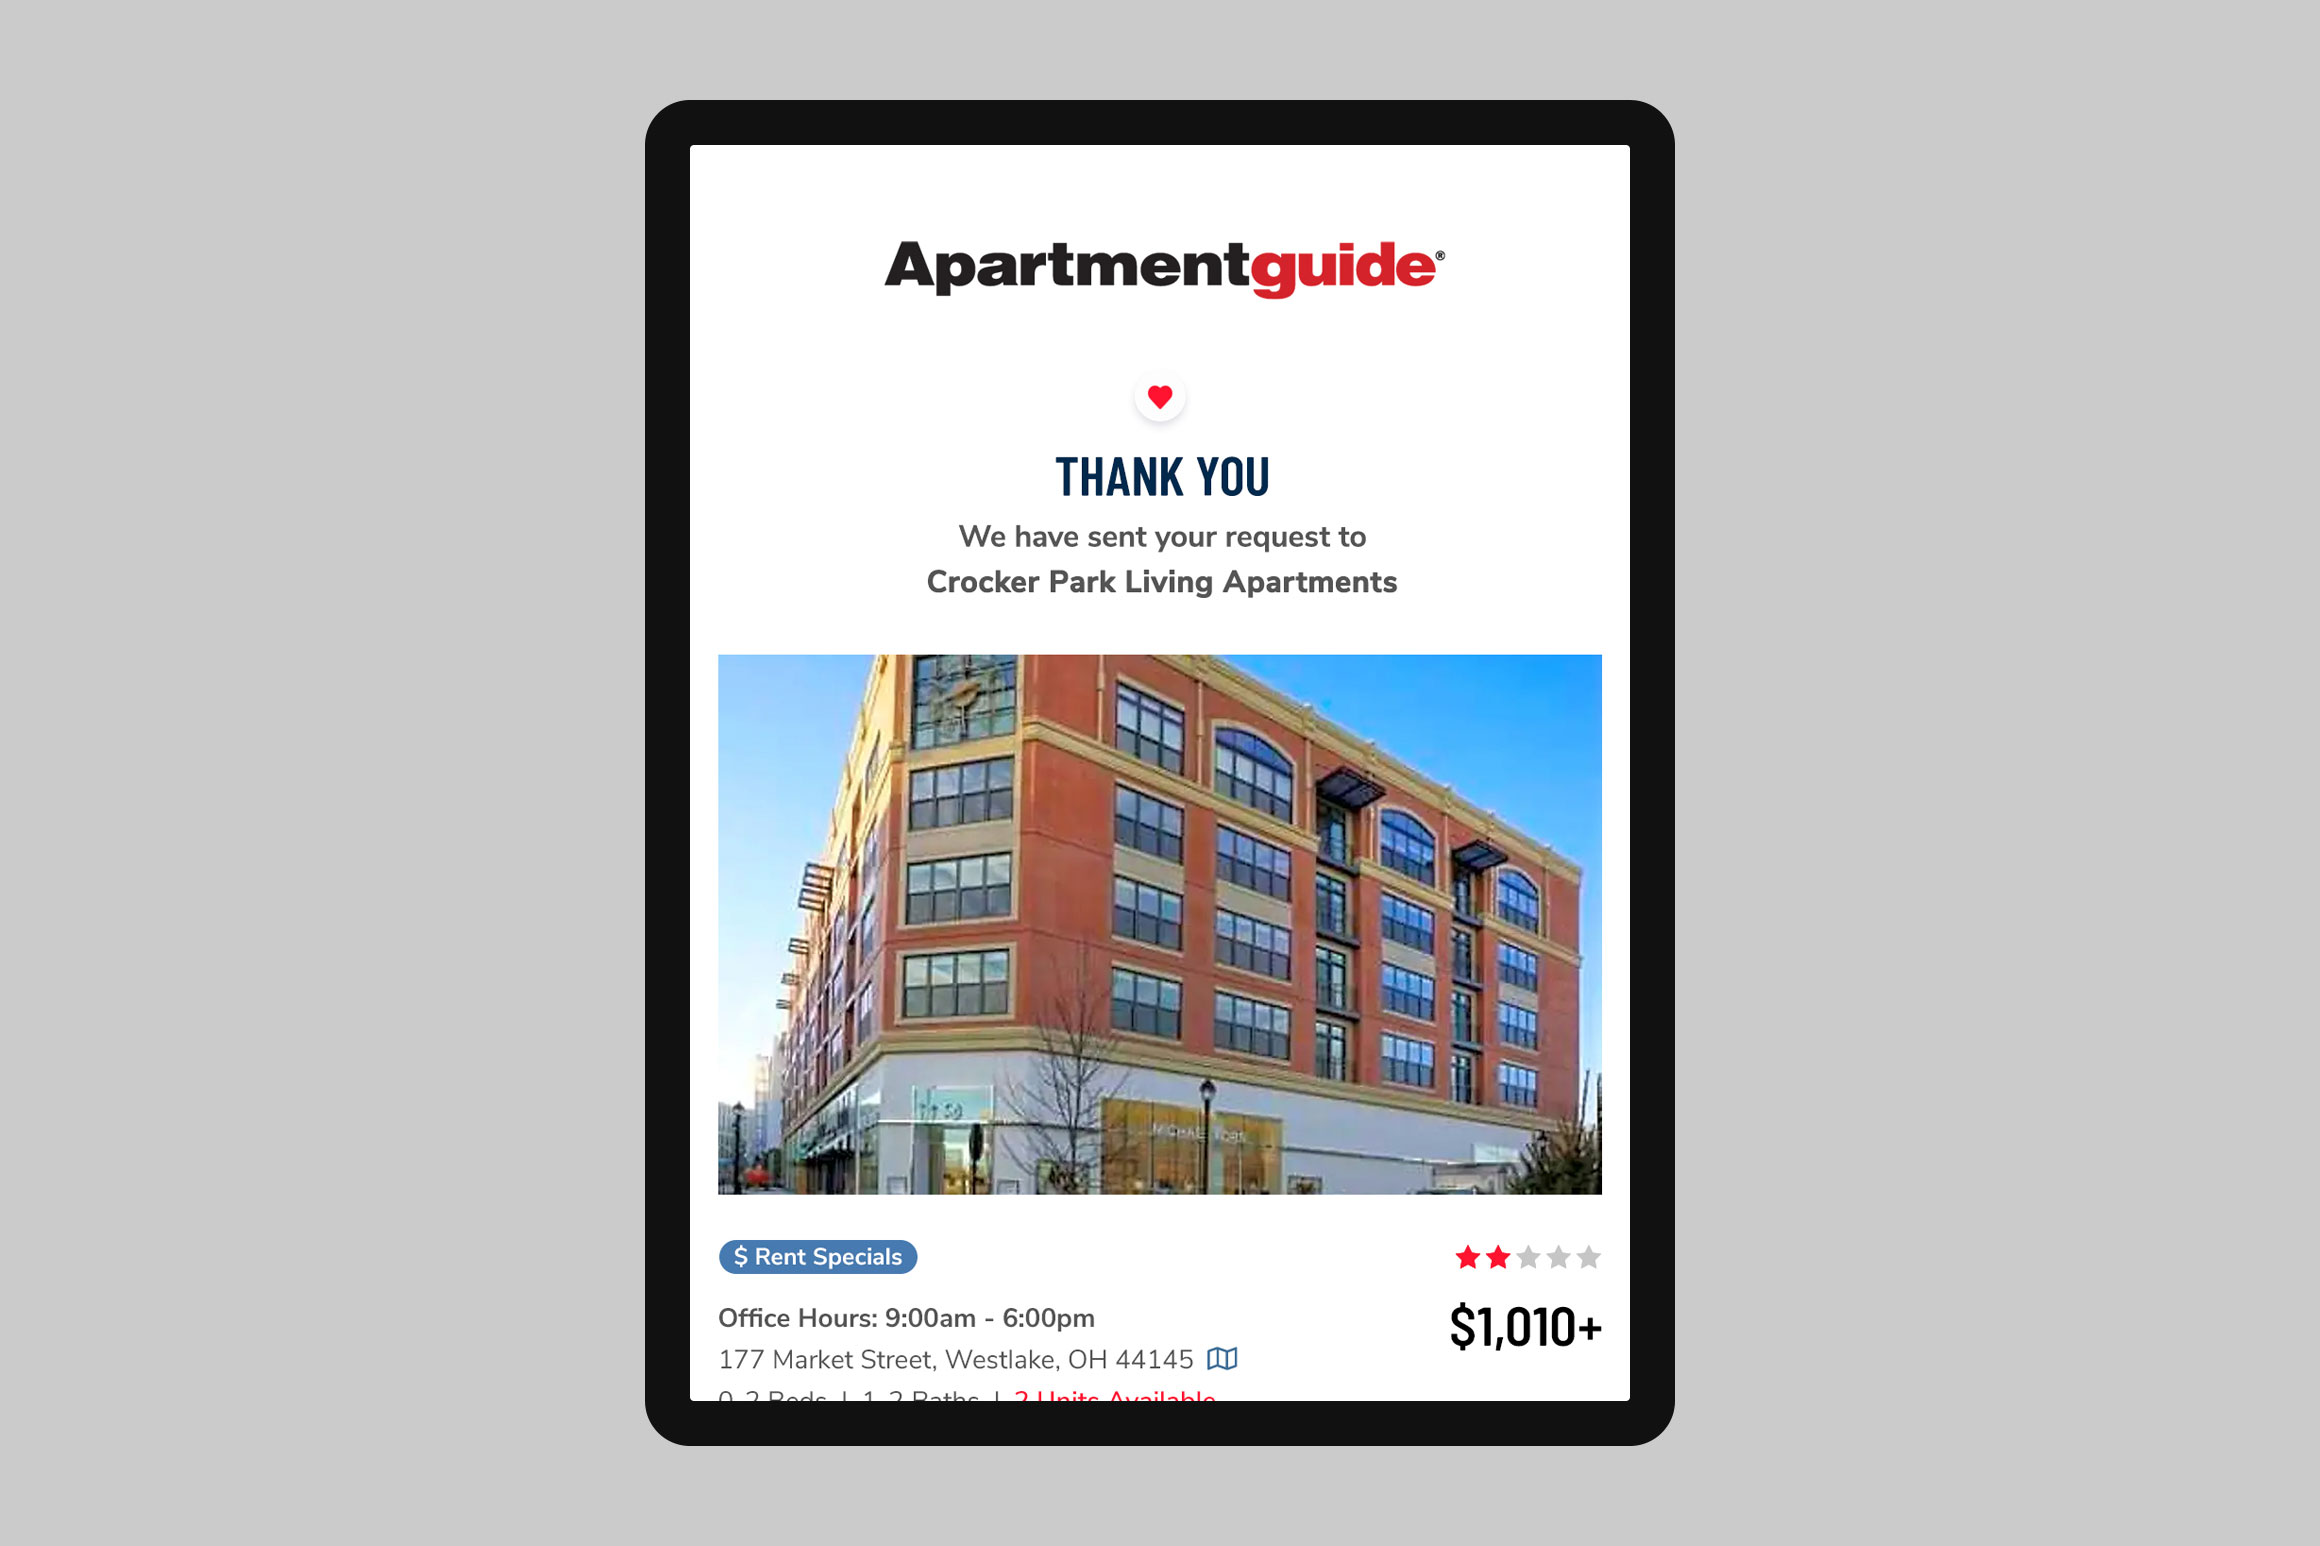 Apartment Guide Confirmation Email